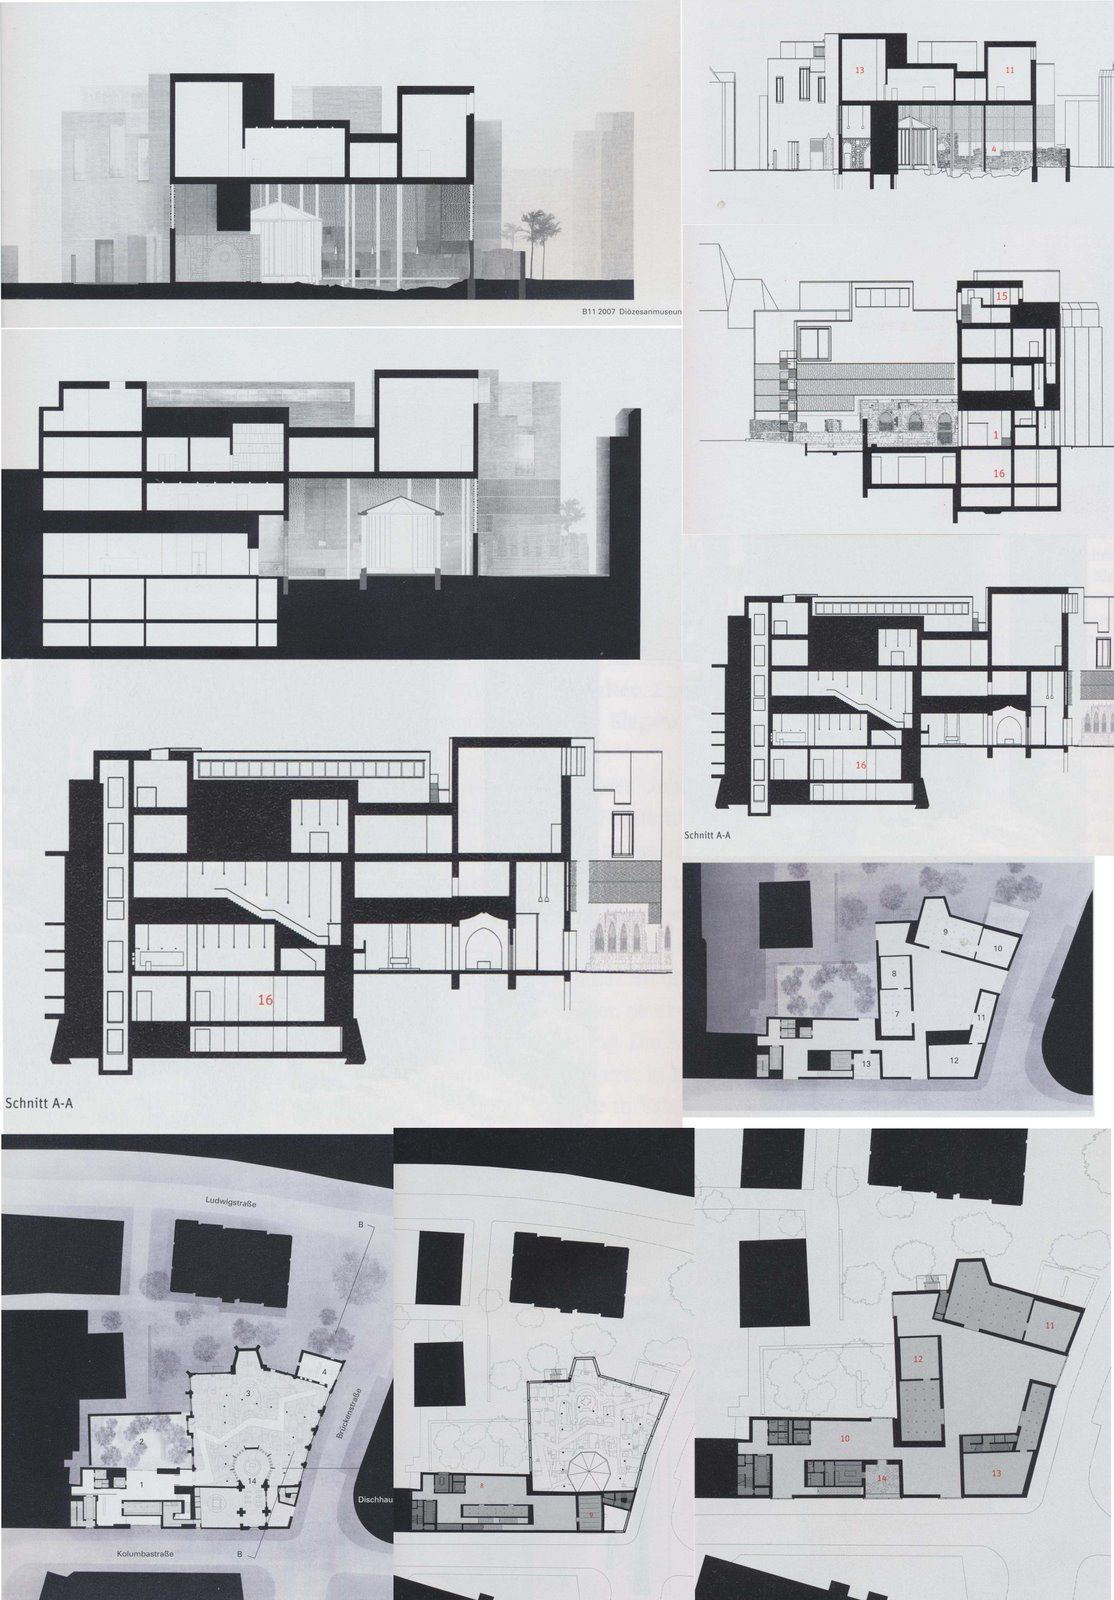 Brick peter zumthor kolumba architektur grafik layouts for Architektur layouts